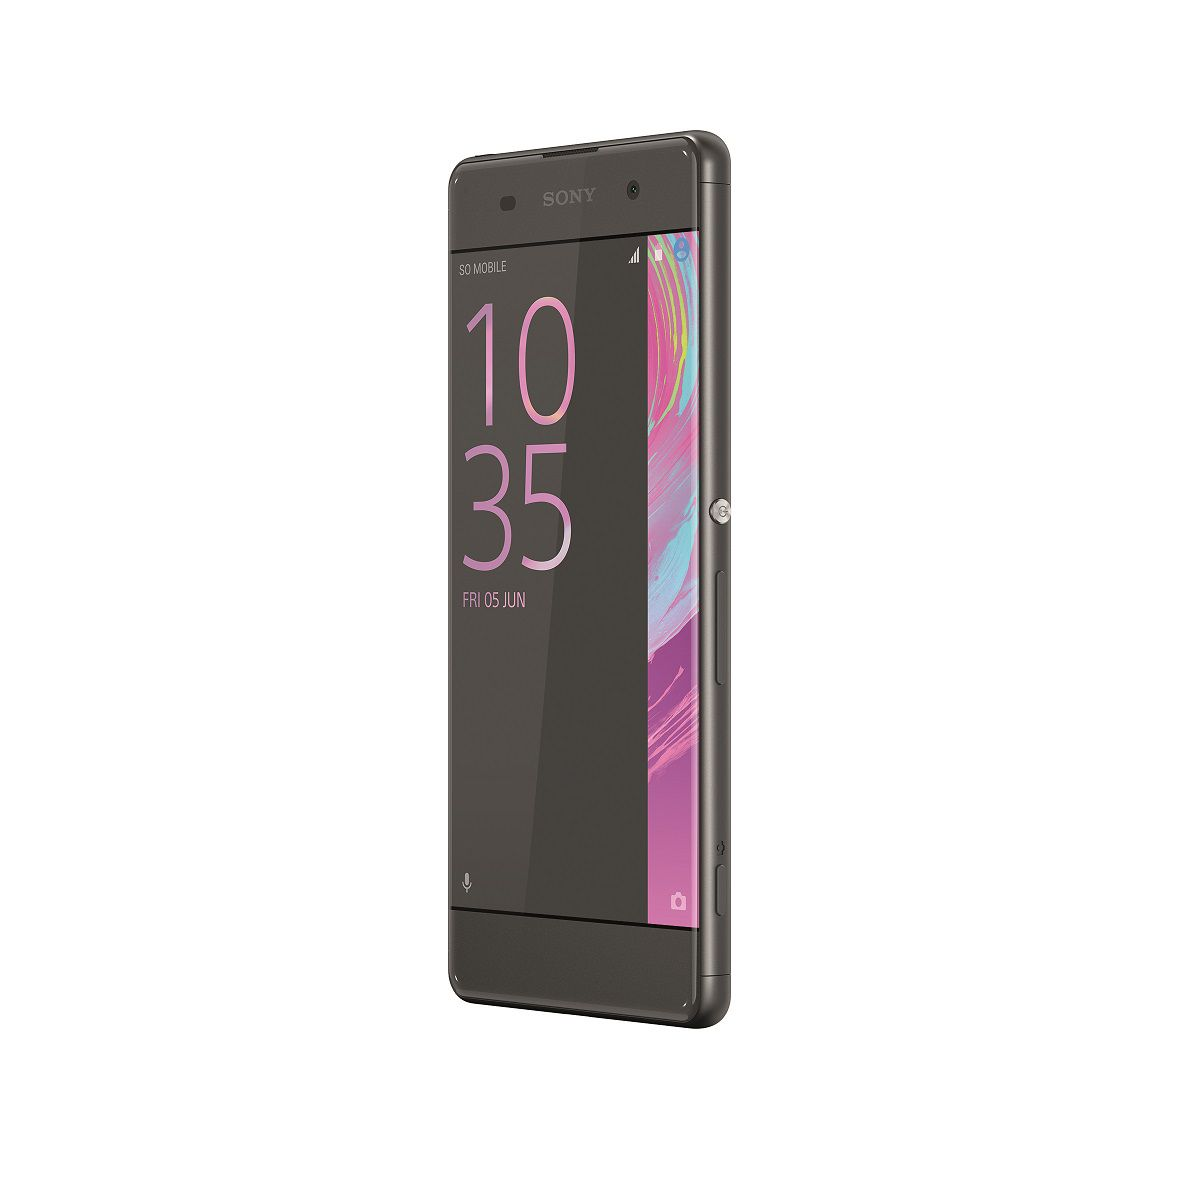 sony xperia xa dual sim 16gb lte black buy online in south africa. Black Bedroom Furniture Sets. Home Design Ideas